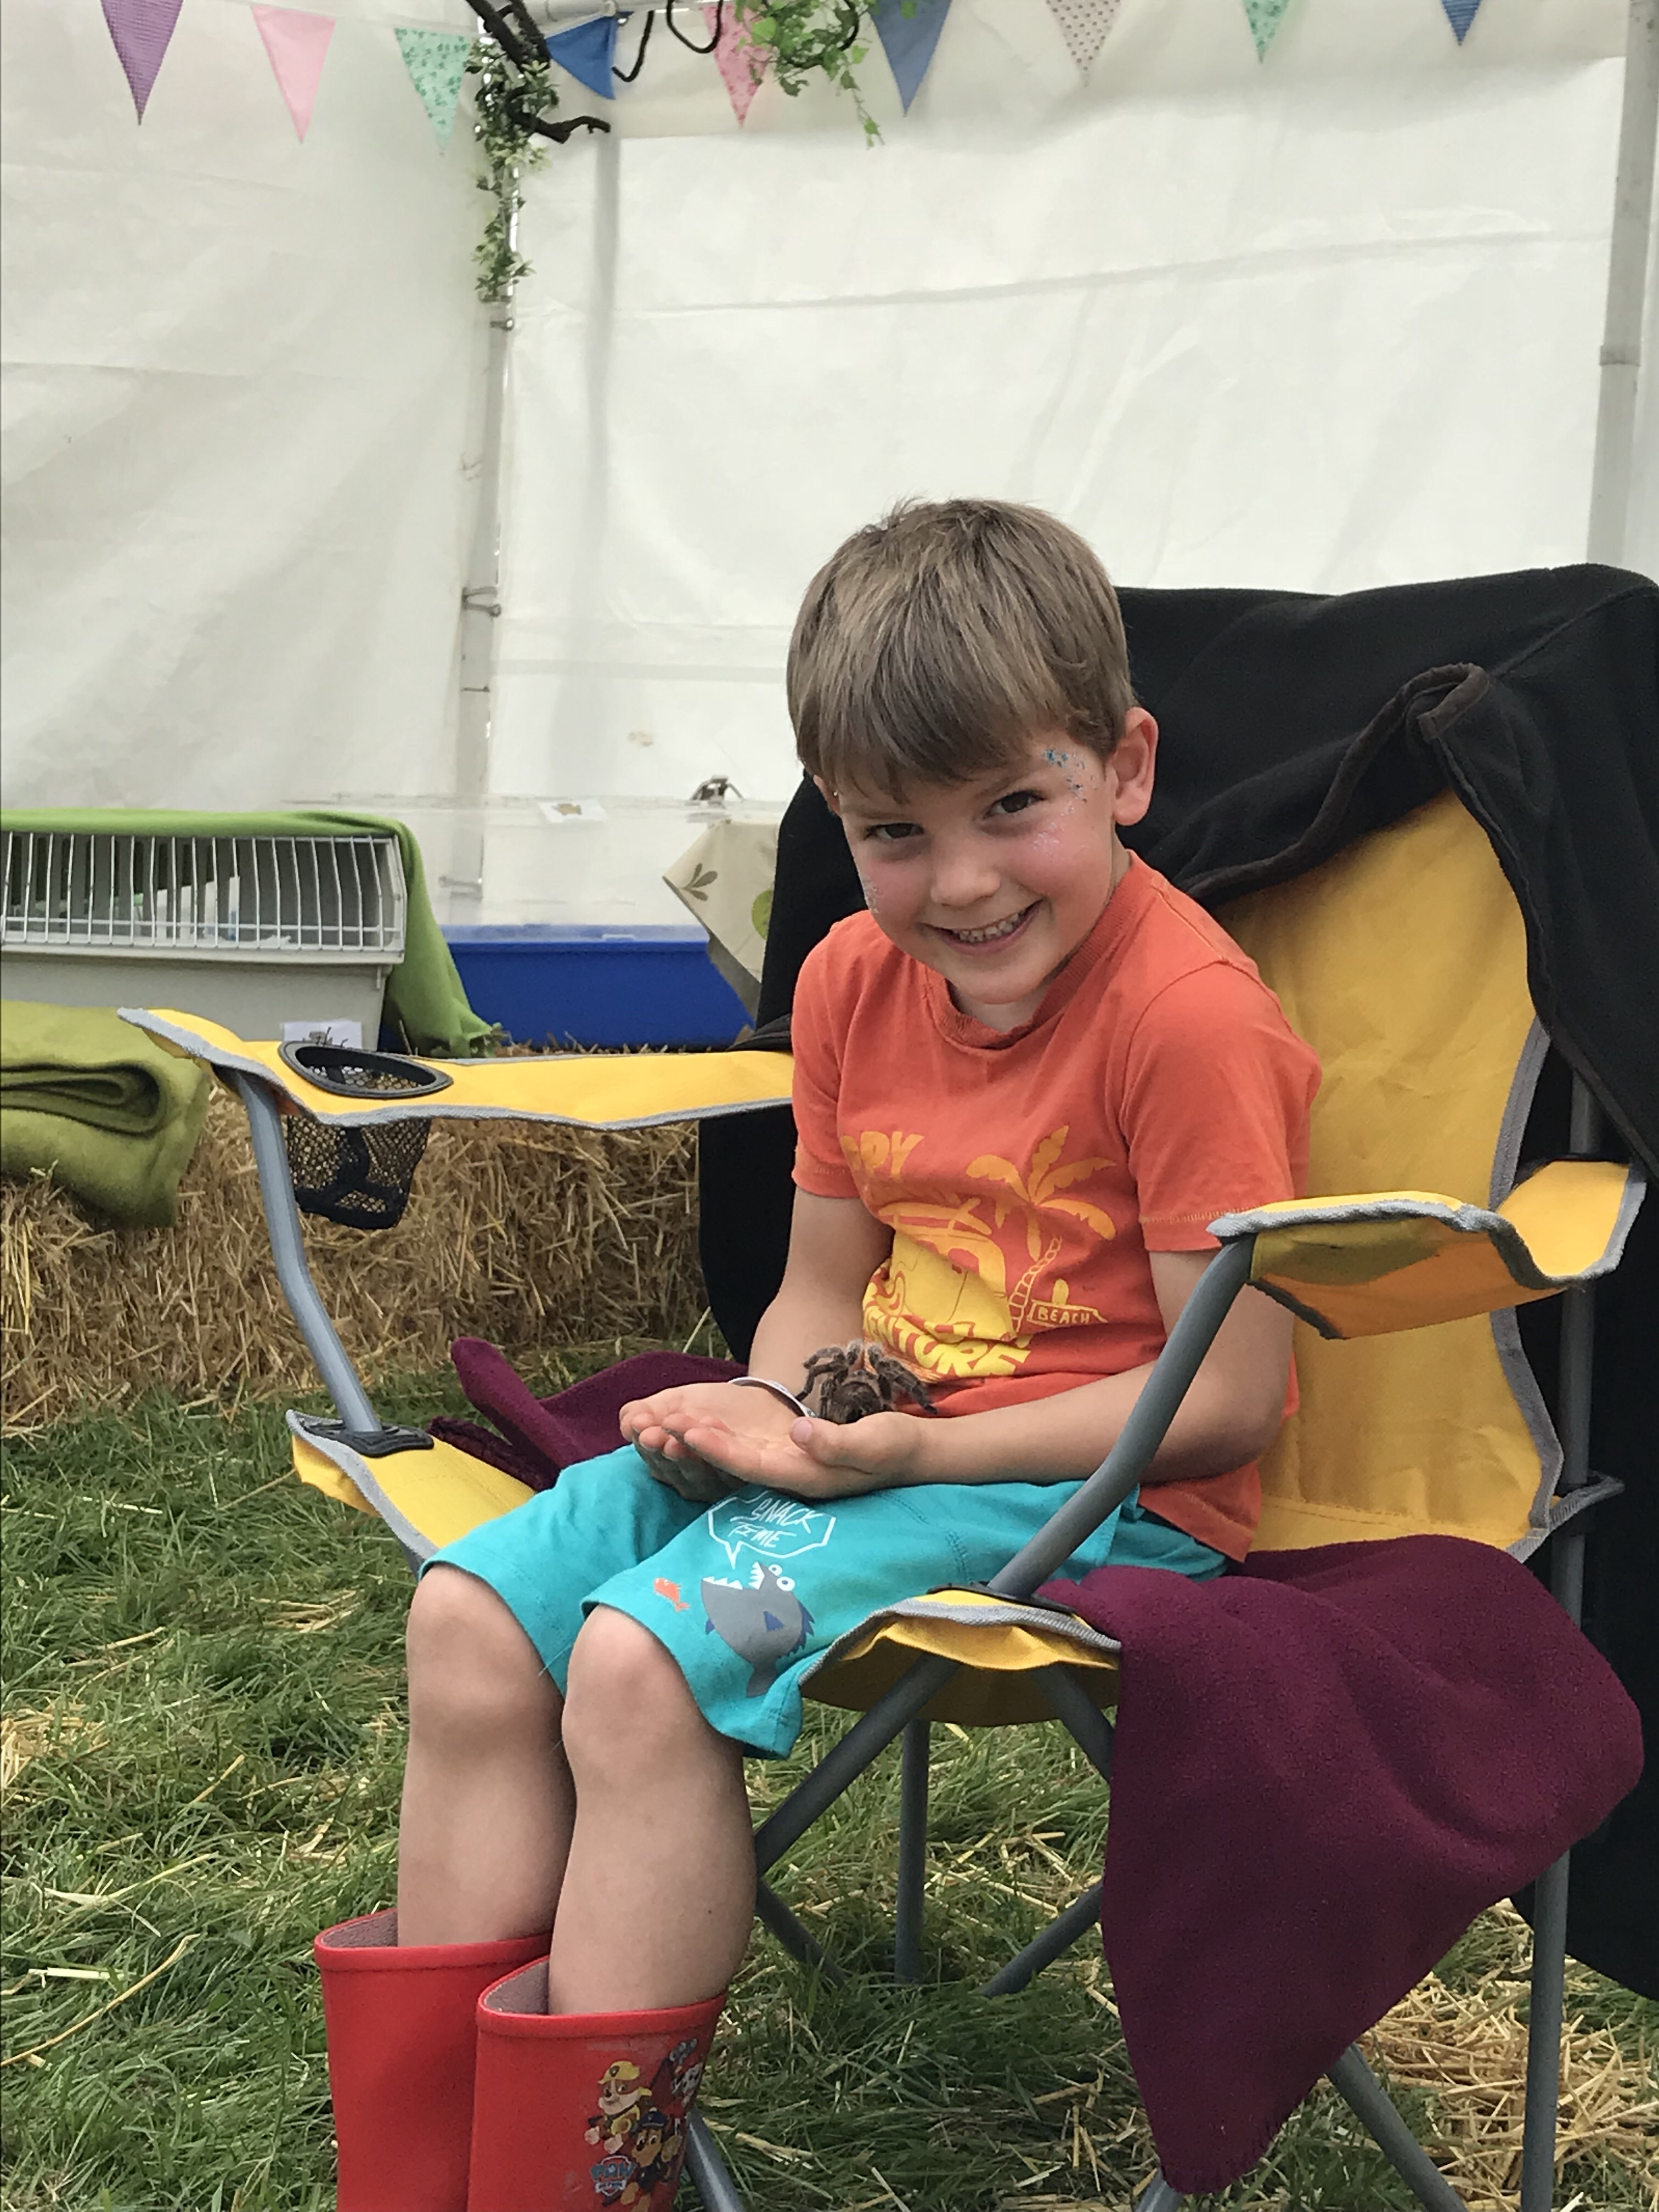 In a pretty tent, decorated with bunting, my son sits in a yellow camping chair, wearing an orange t-shirt, green shorts and red wellies, he beams proudly as he holds a large tarantula on his lap.